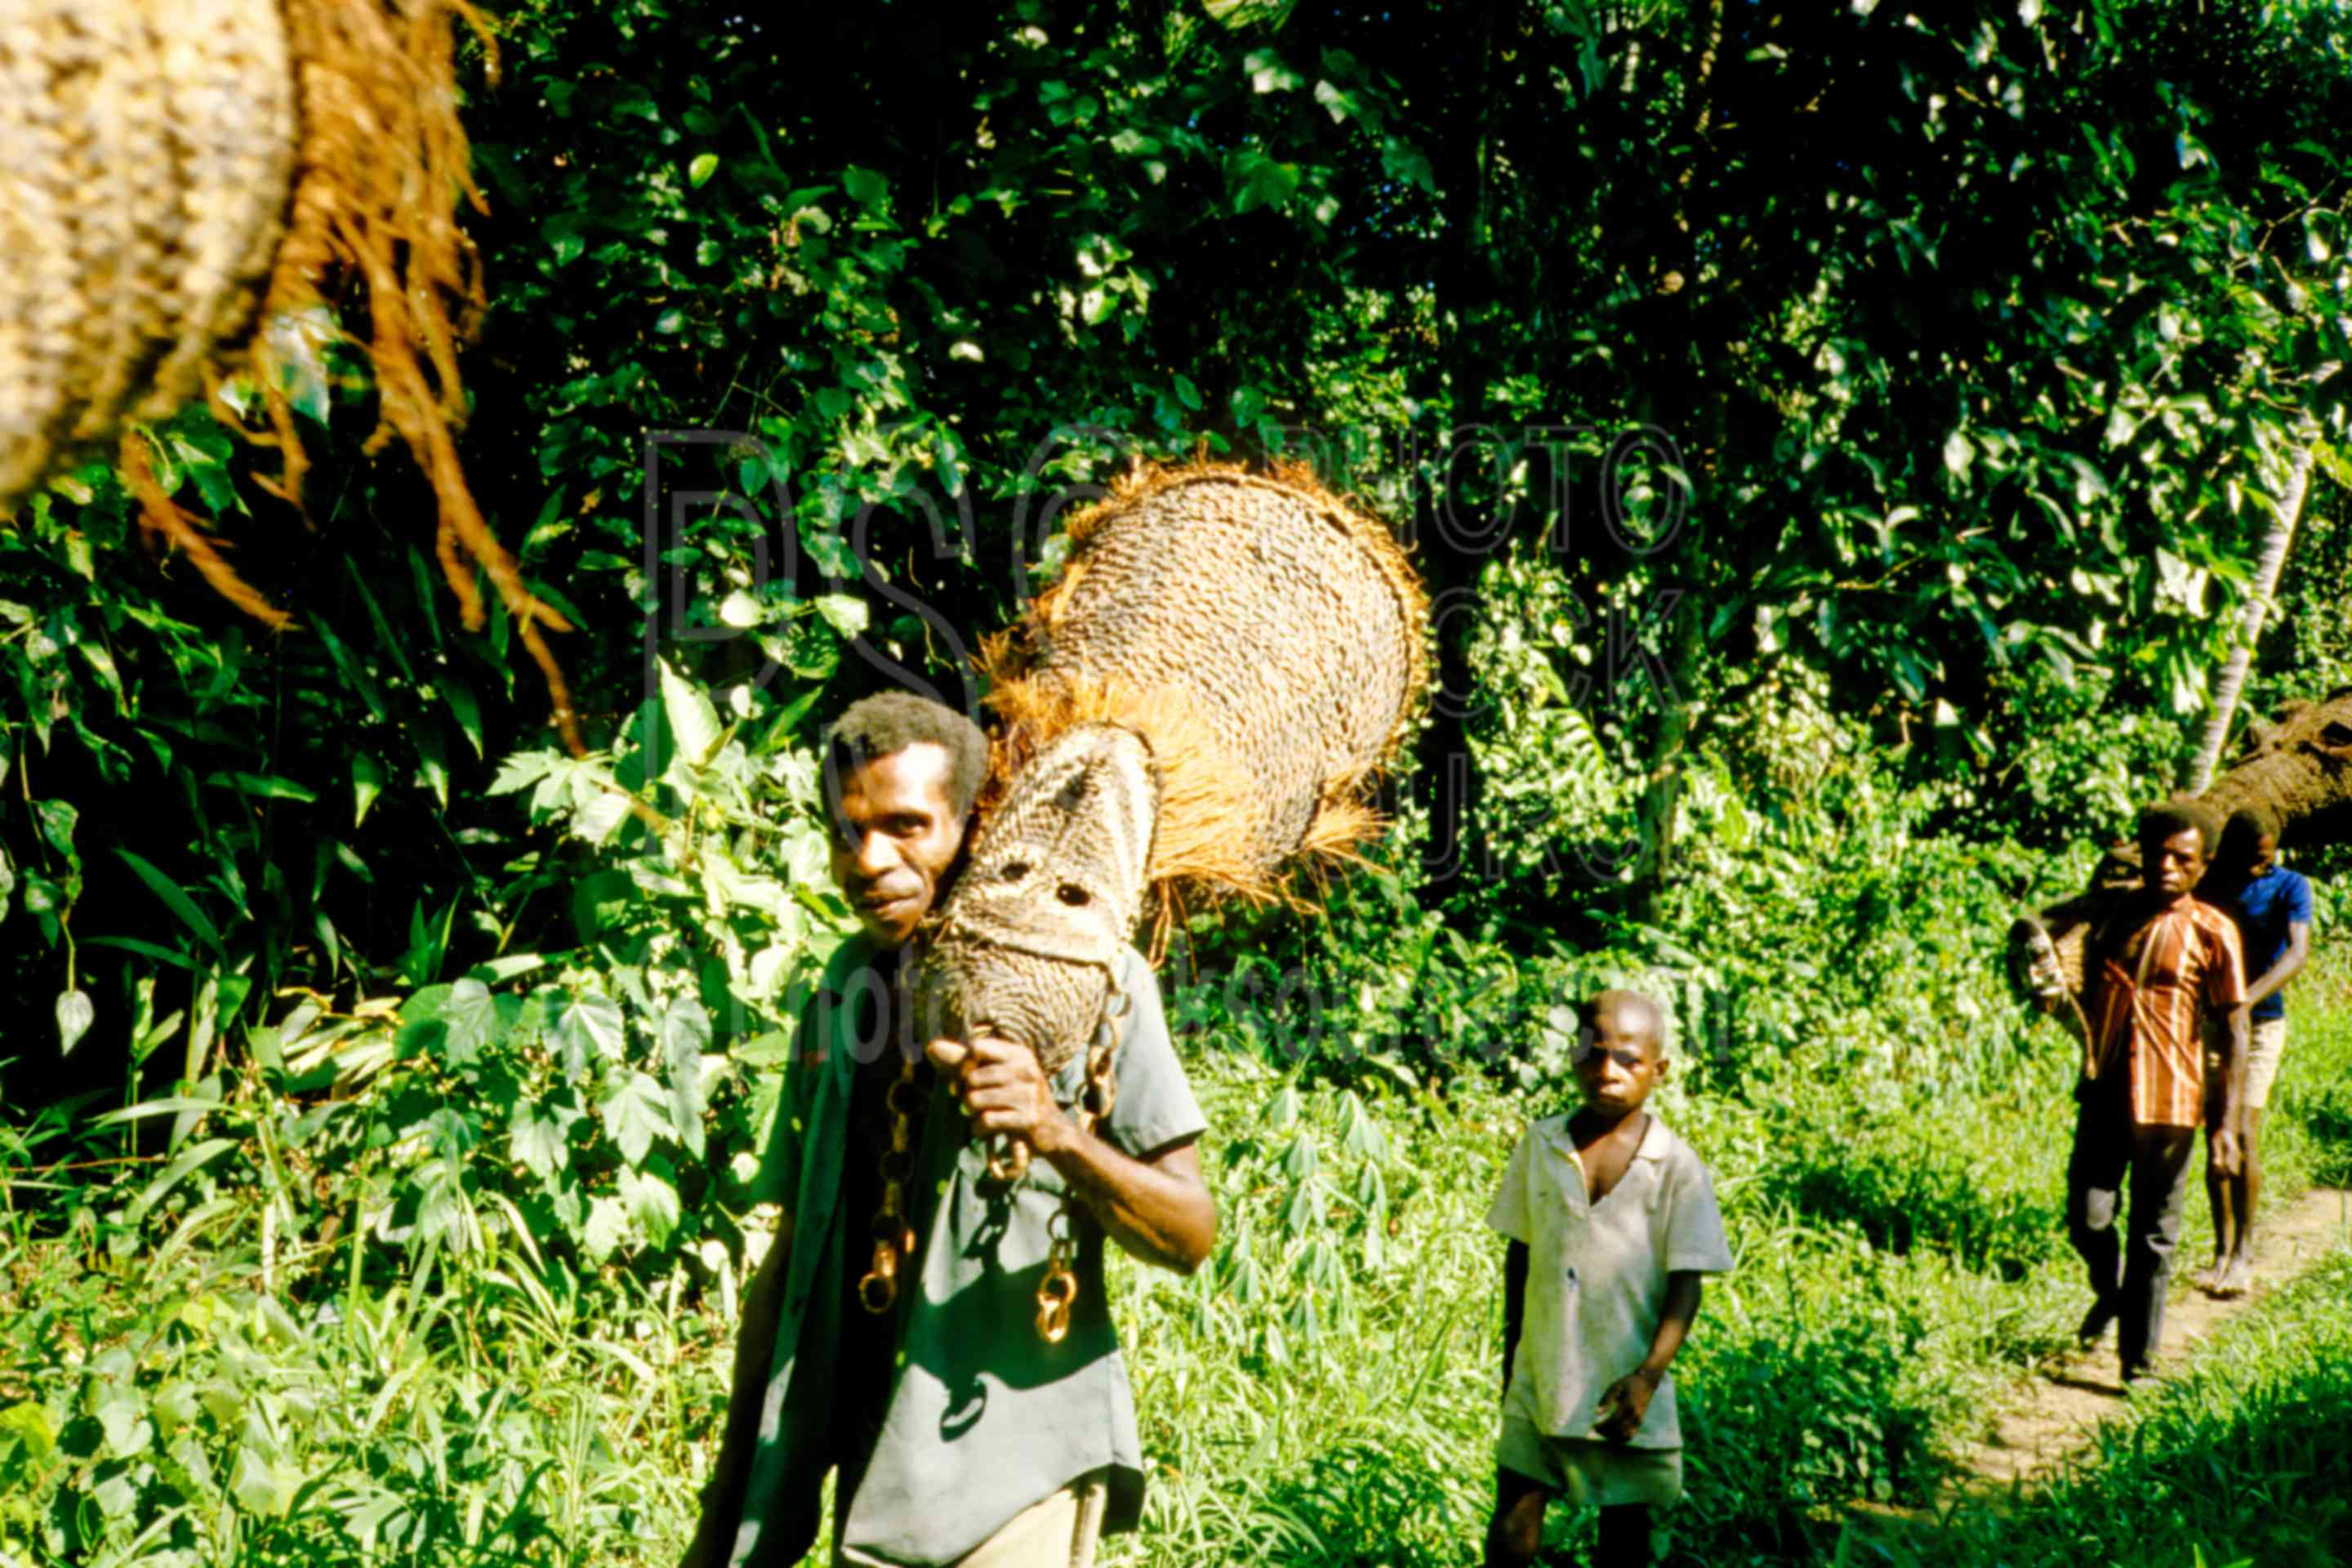 Men Carrying Tambuans,tambuan,mens,trail,carry,arts,artifact